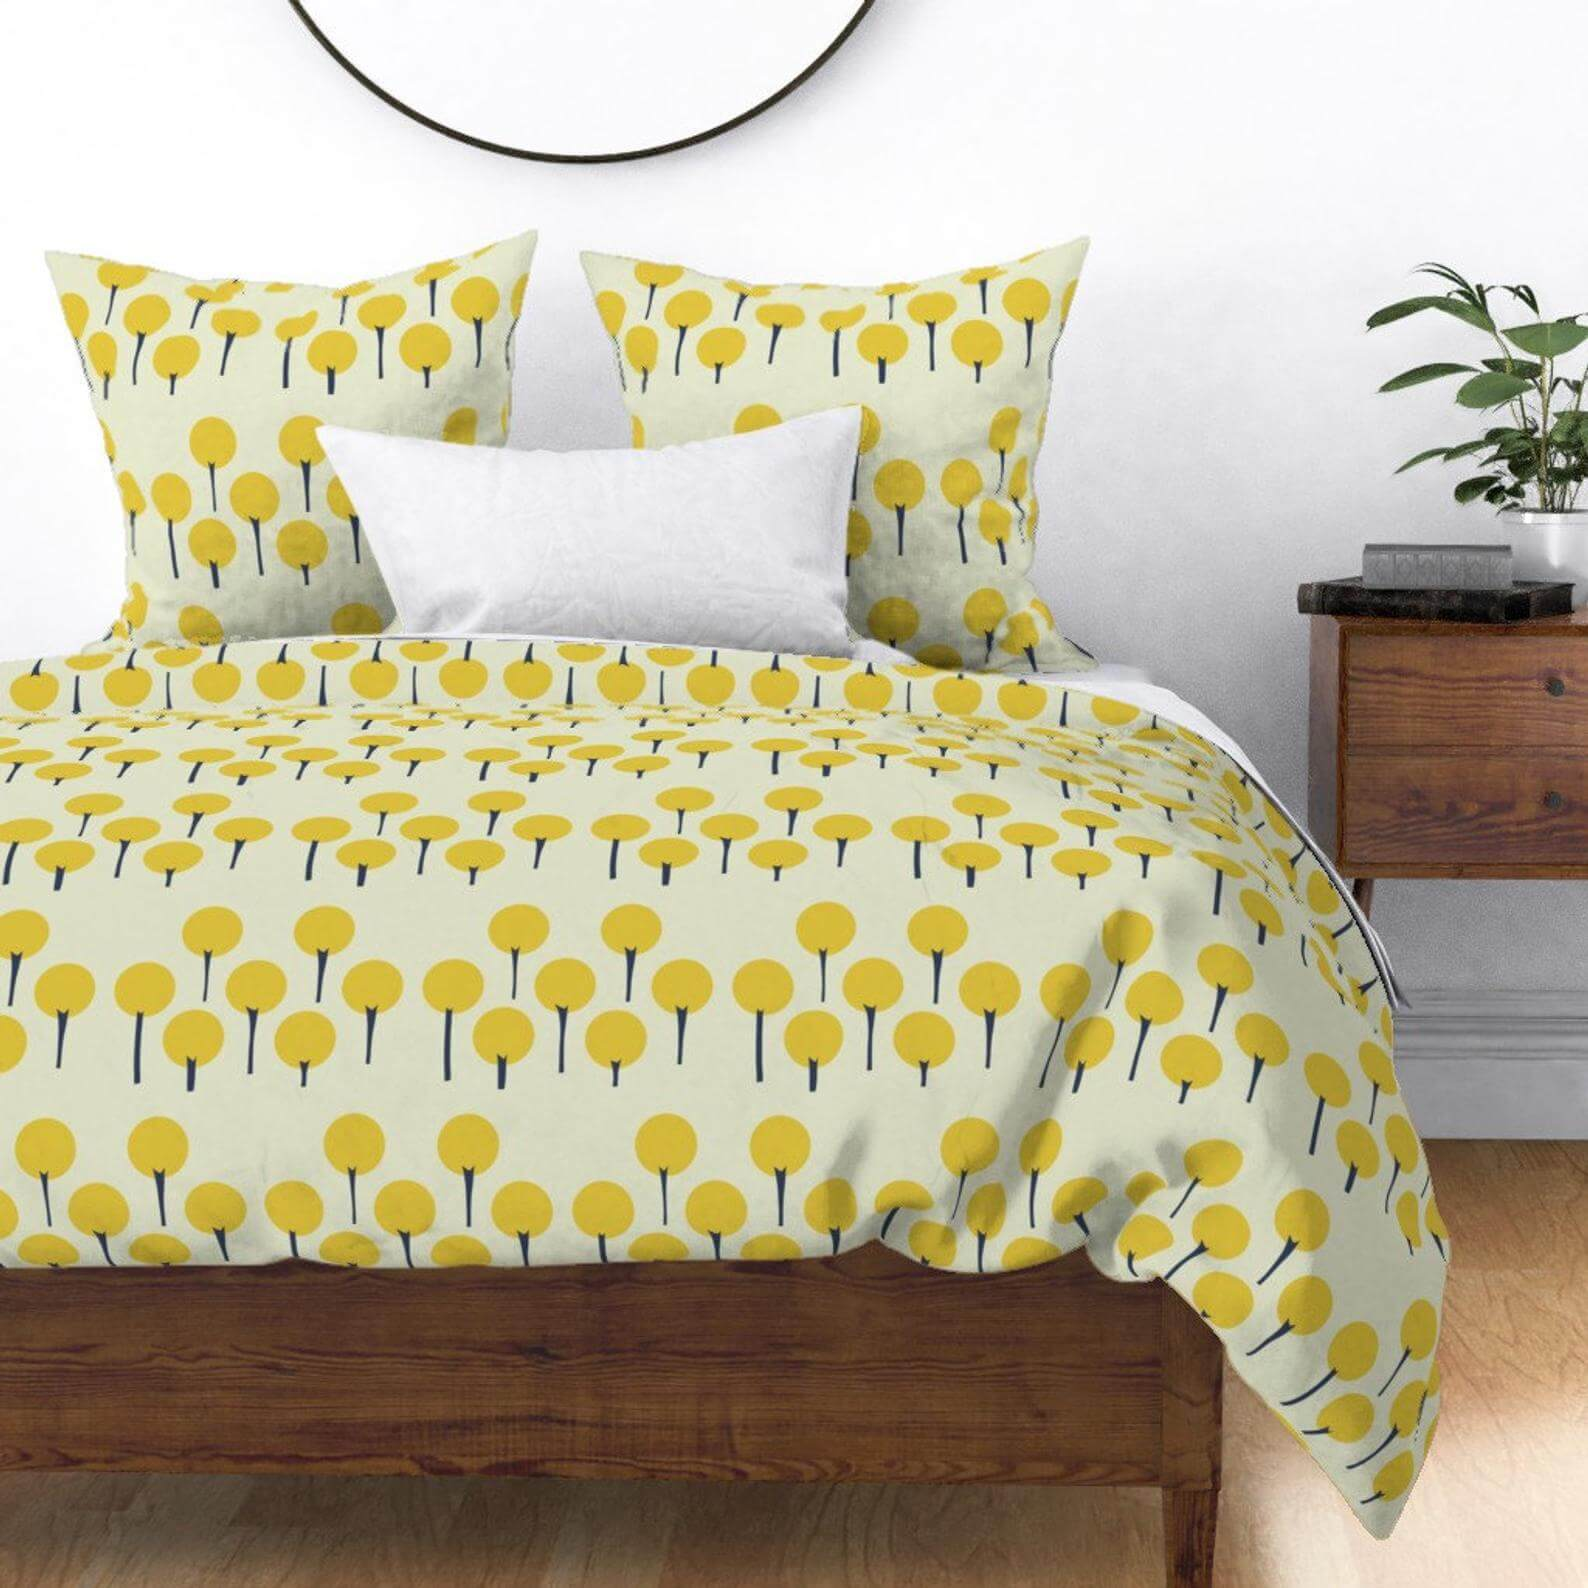 A duvet cover with a mid century tree pattern surrounding the exterior.